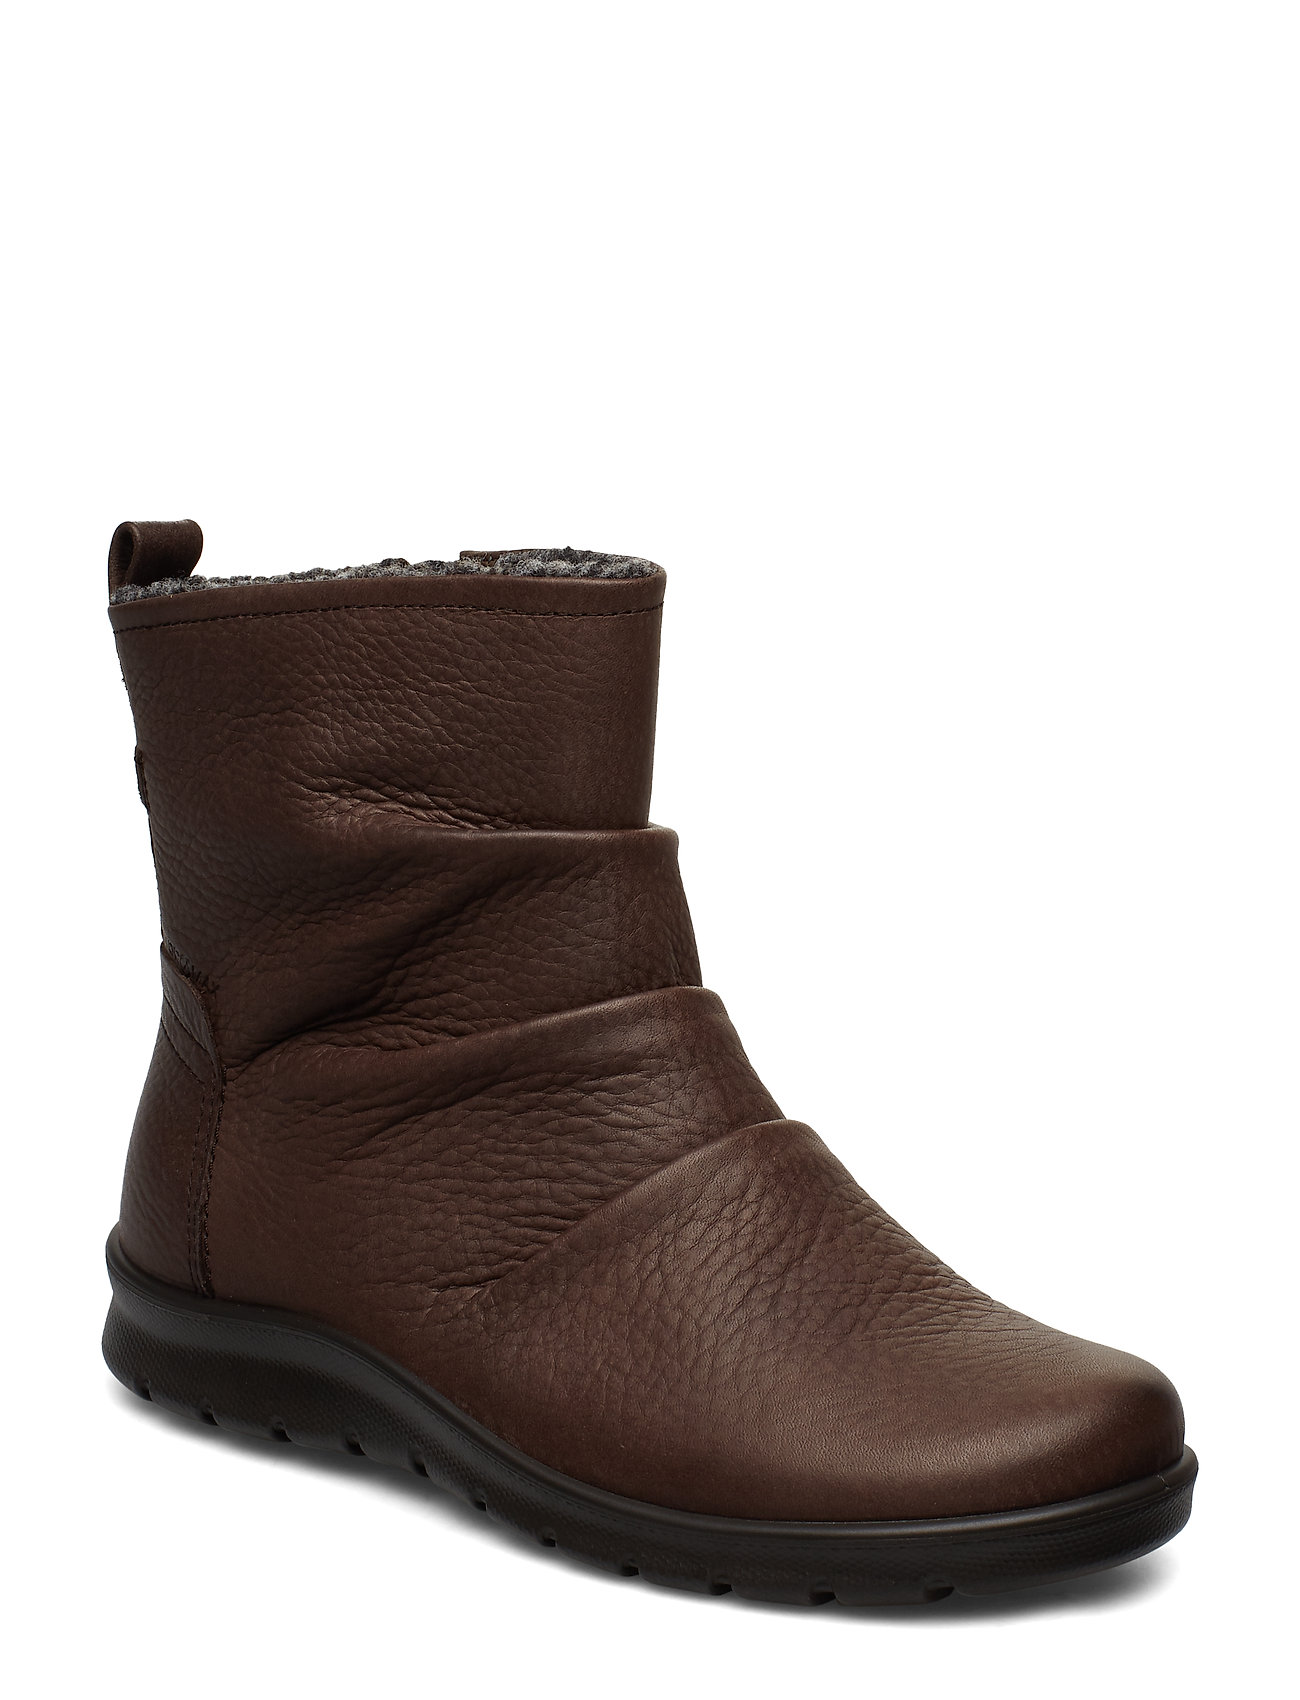 Image of Babett Boot Shoes Boots Ankle Boots Ankle Boots Flat Heel Brun ECCO (3214085261)